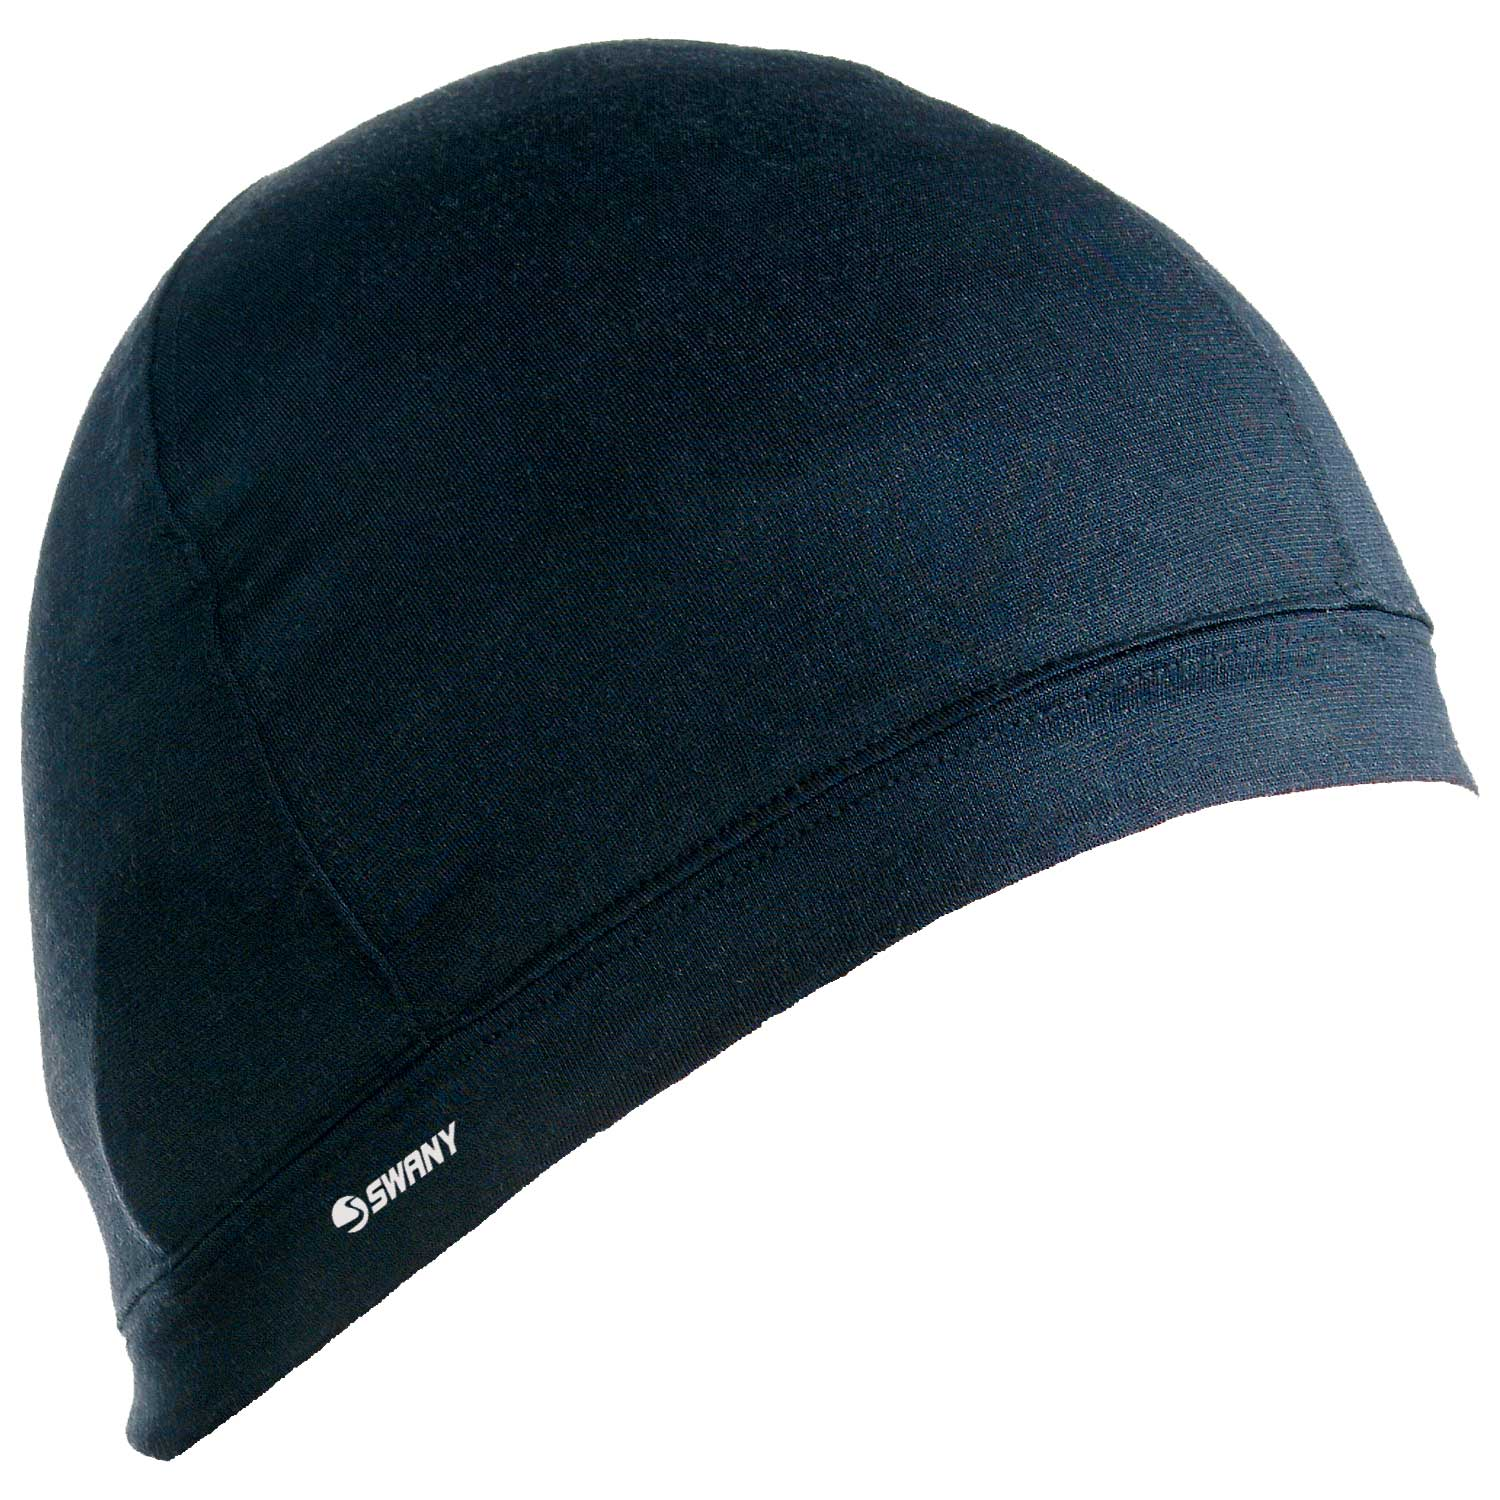 SUPRASILK SKULL CAP picture